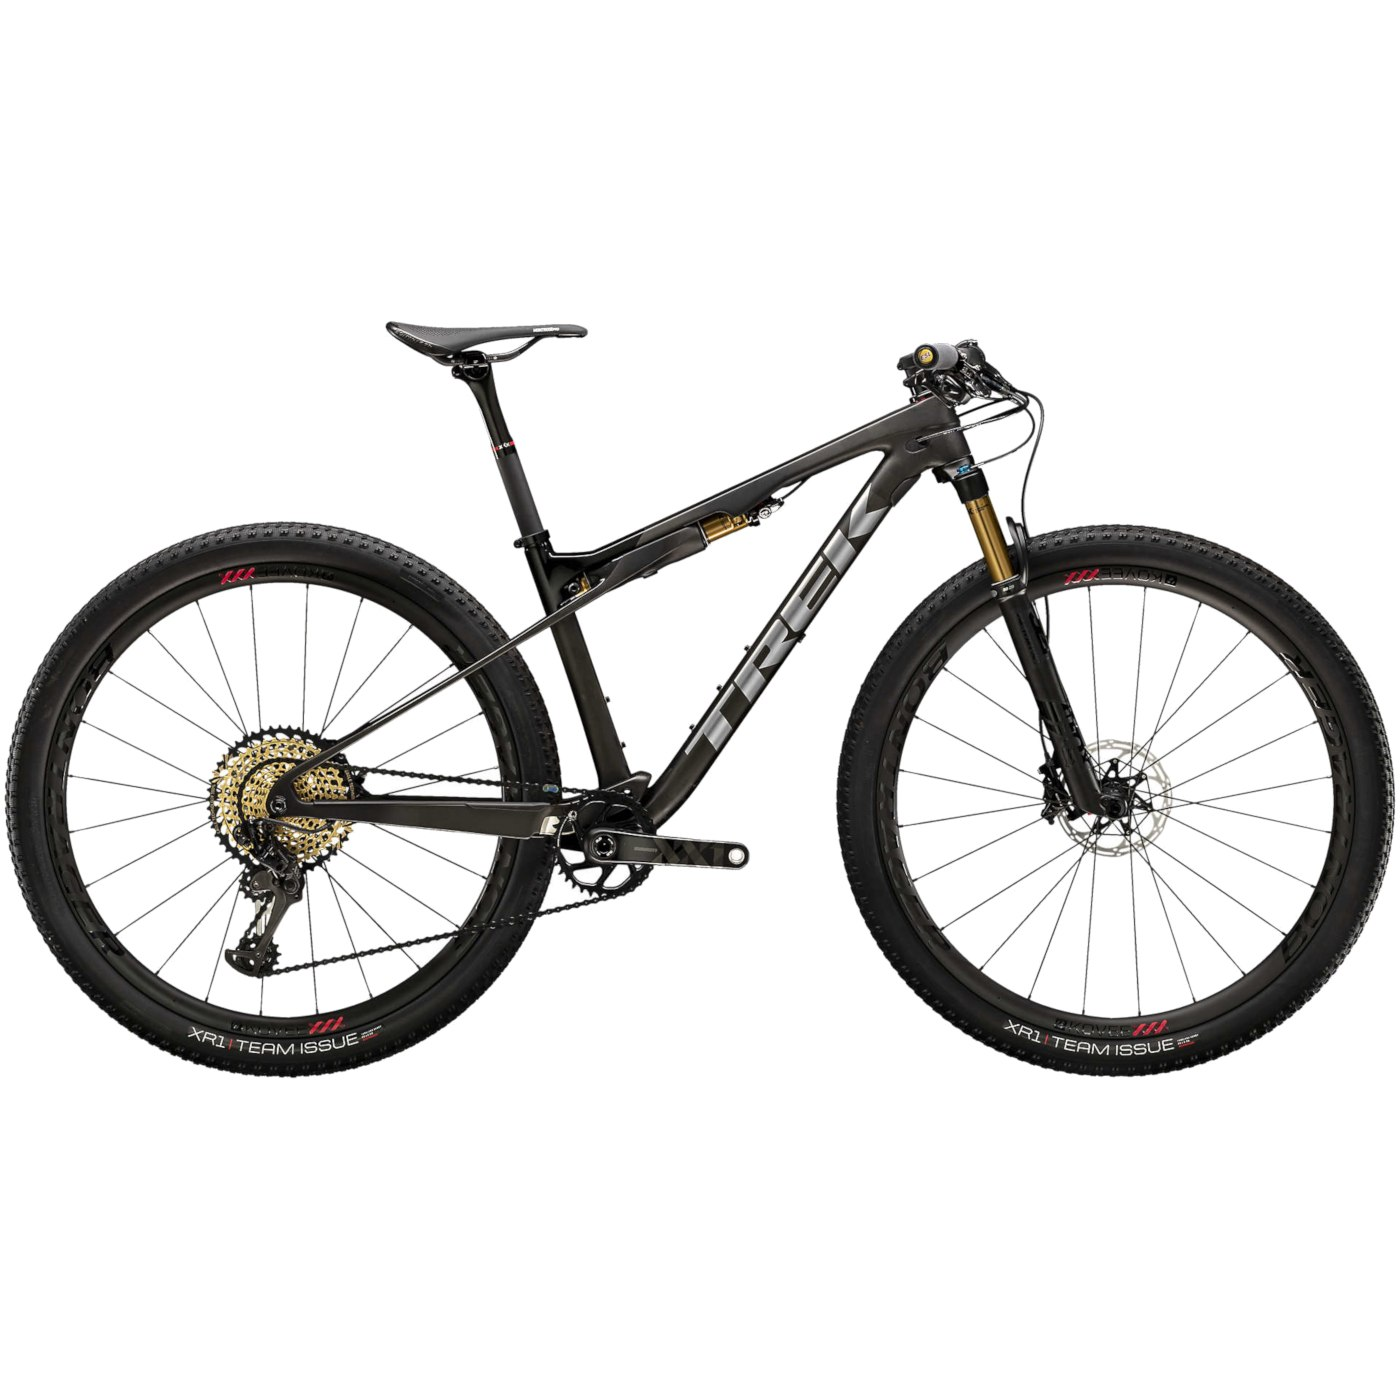 100% Quality Trek SUPERCALIBER SL 9.9 XX1 Mountainbike 2020 Matte-Carbon Gloss Black